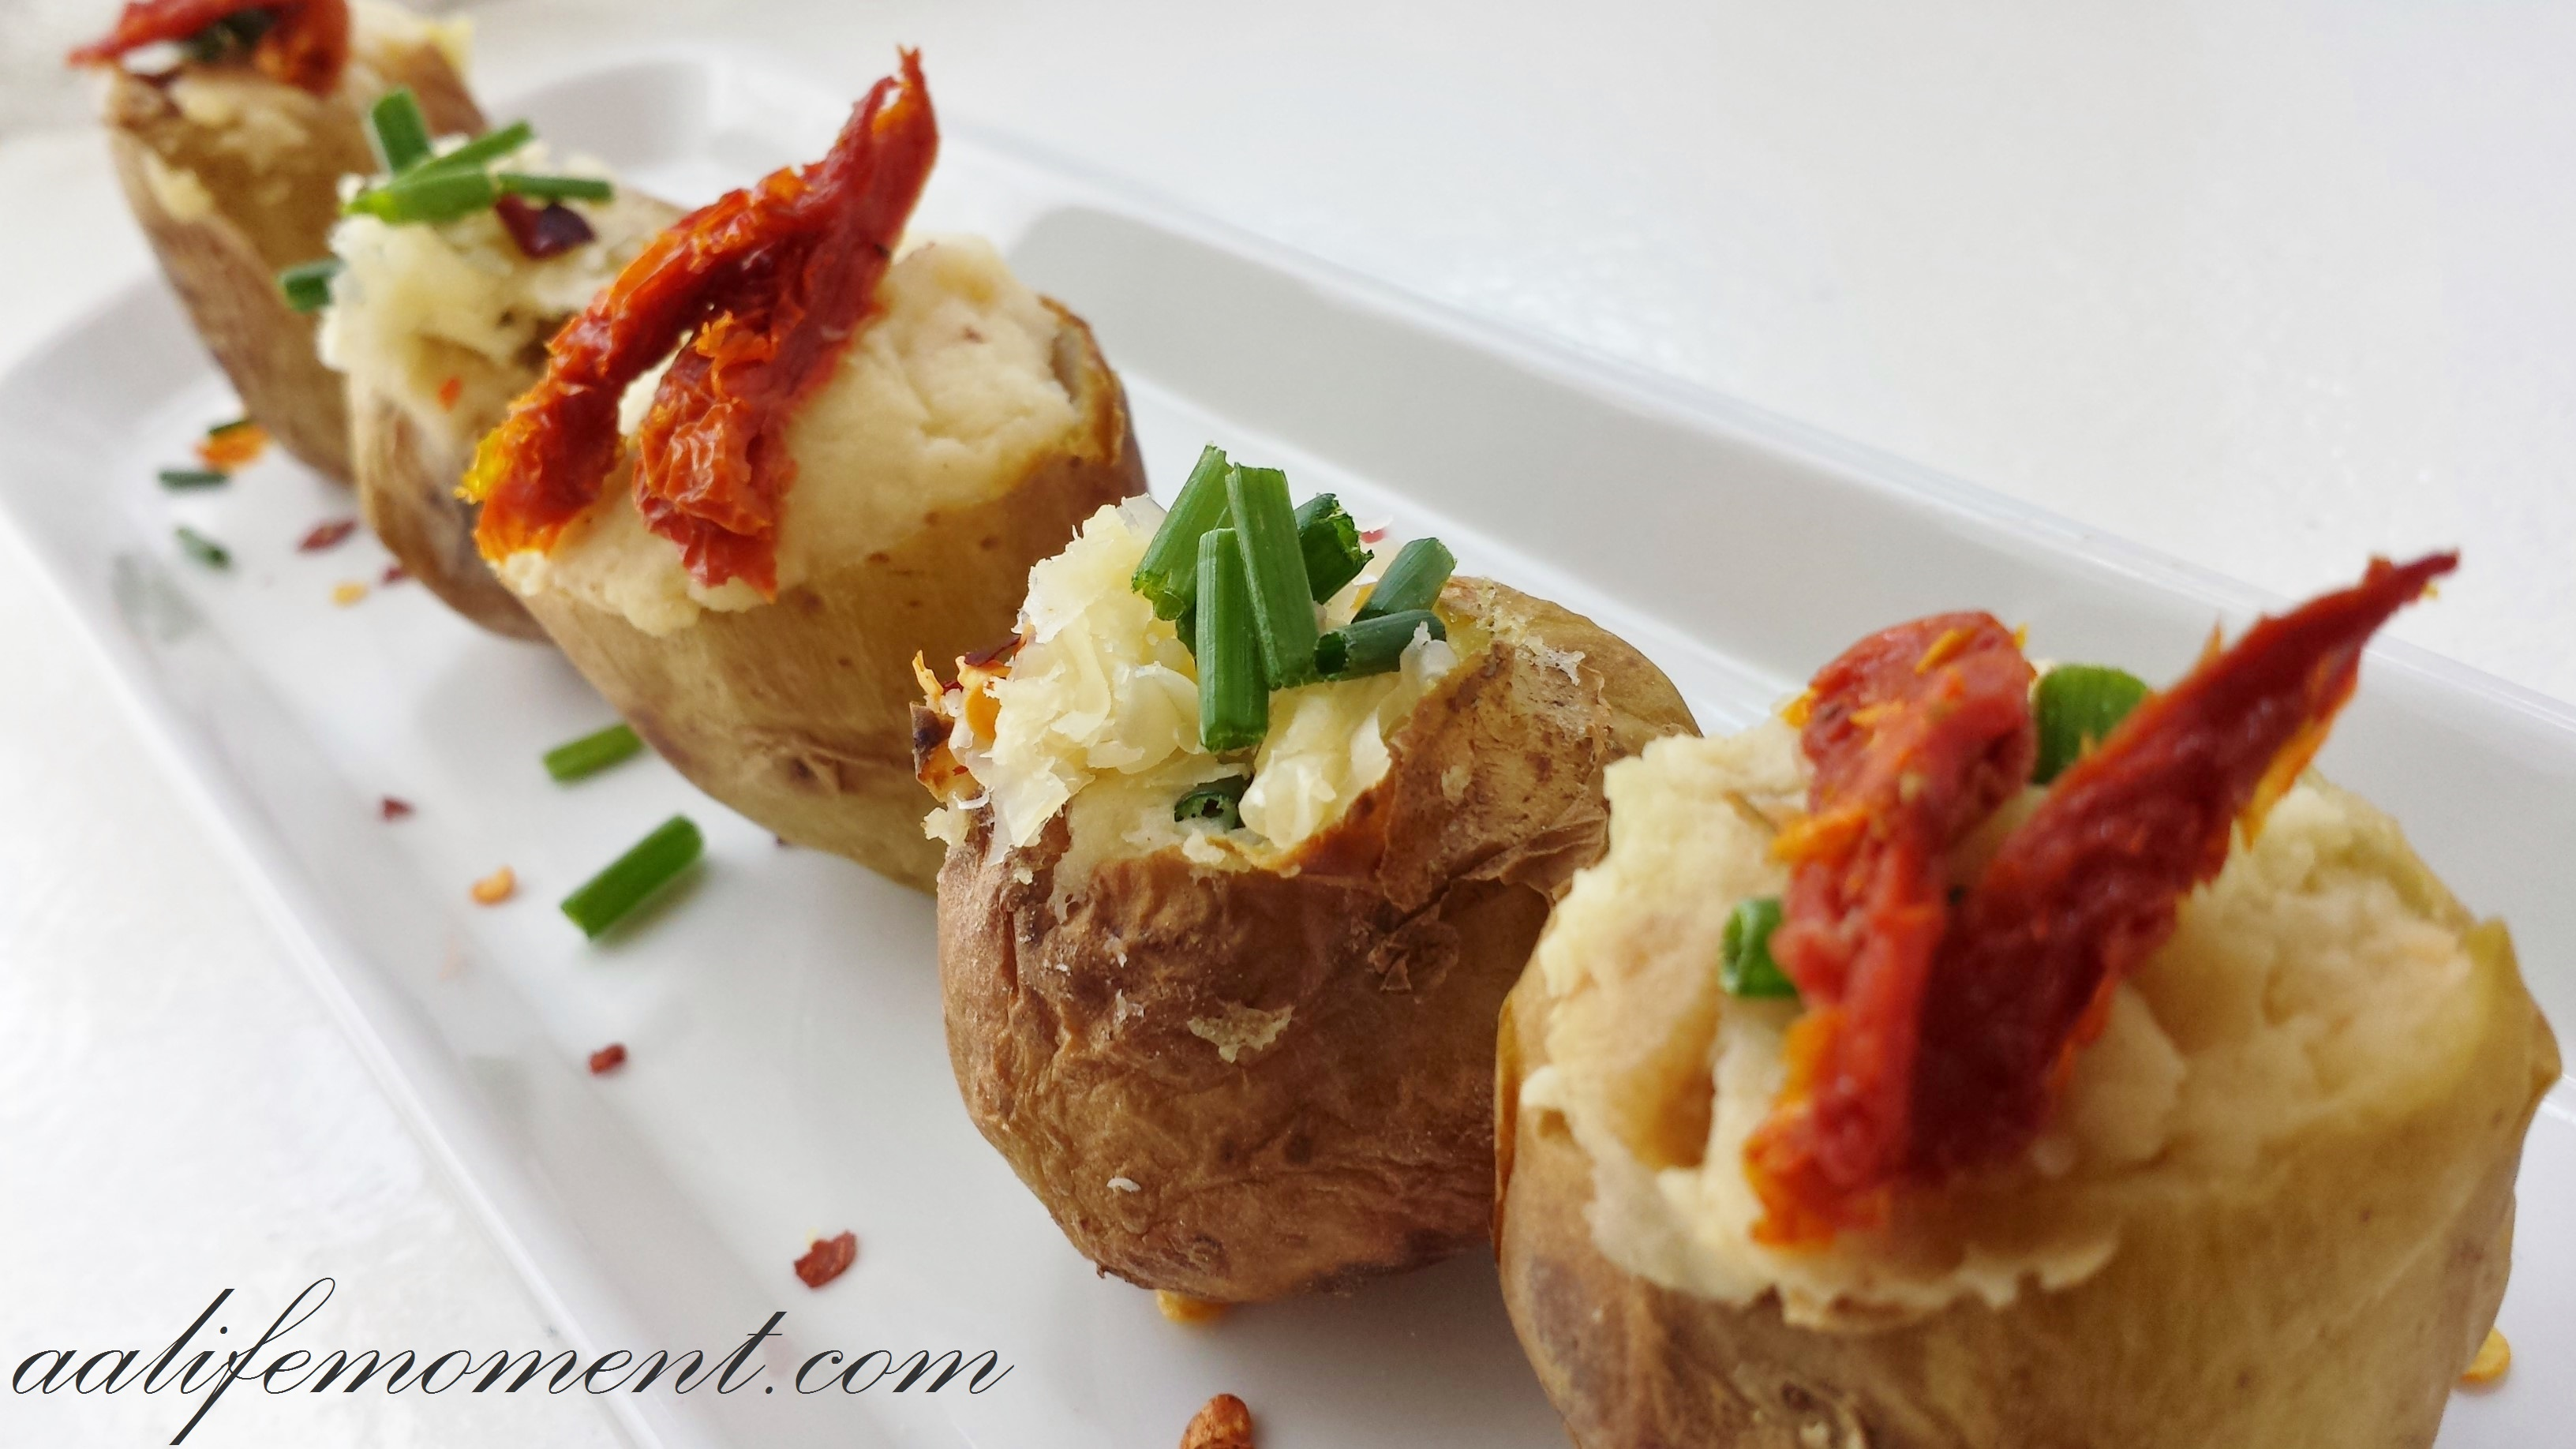 TUFFED POTATOES RECIPE WITH CHEESE, PORK BELLY AND FRESH CHIVES